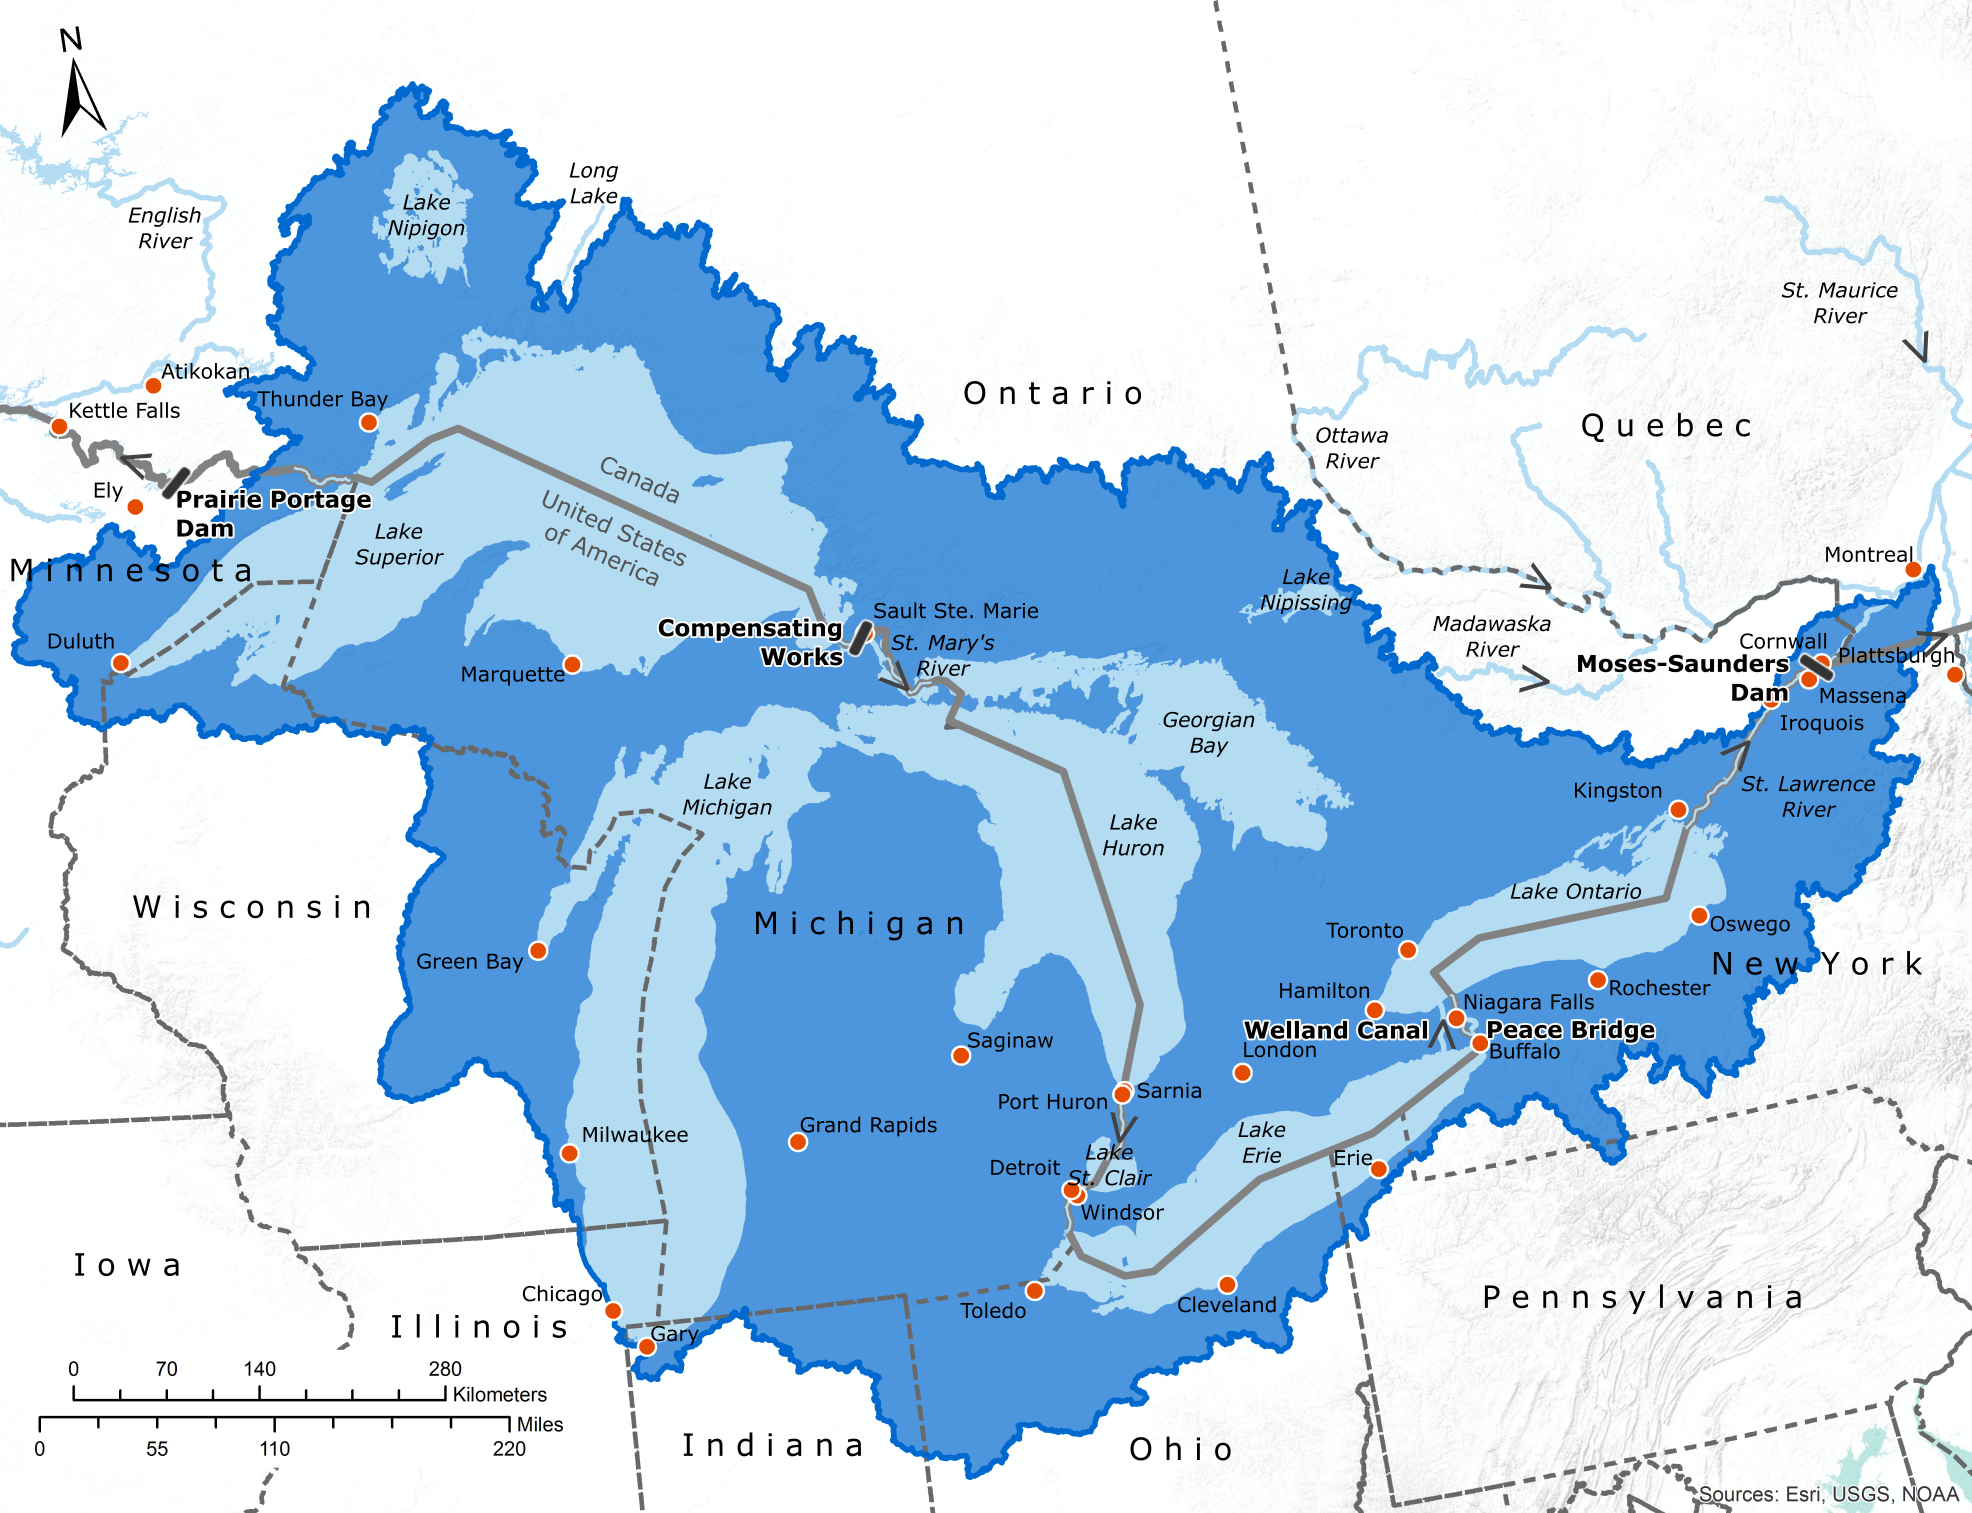 Map of the Great Lakes-St. Lawrence River watershed